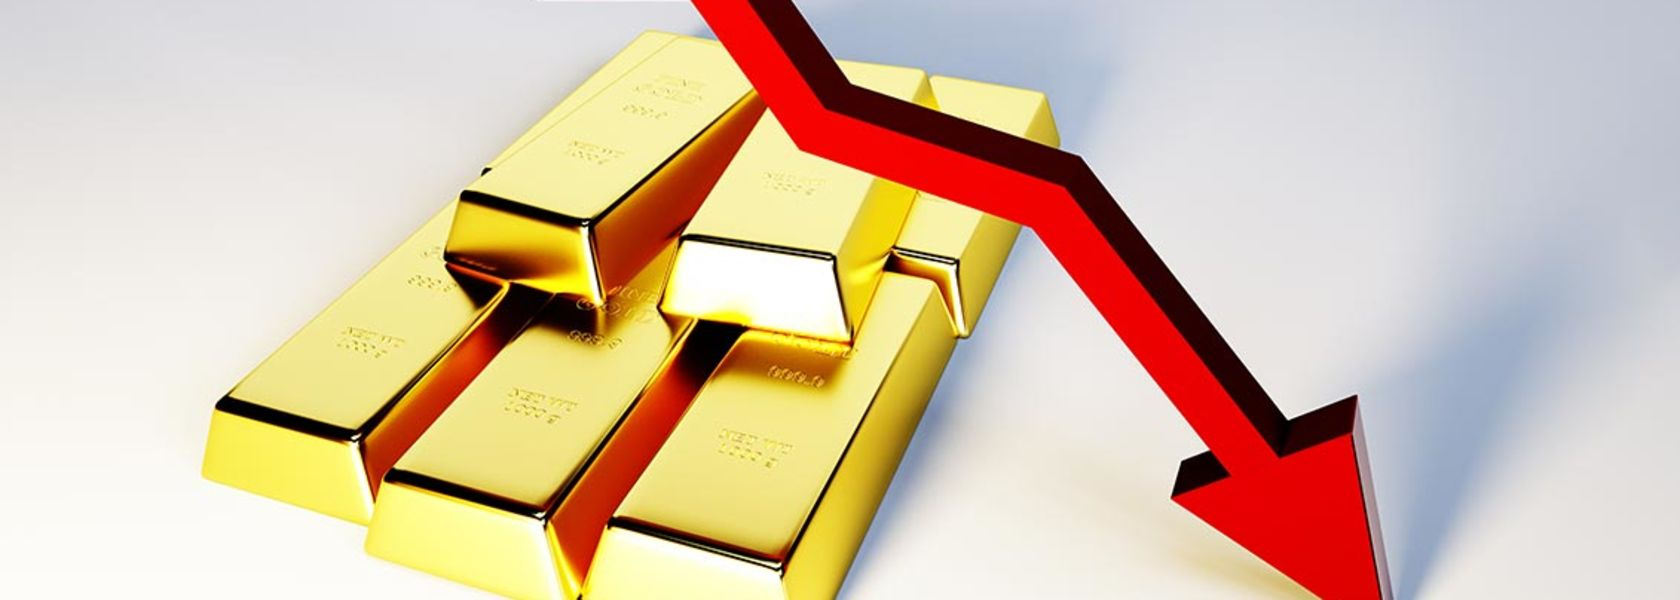 Gold clings to $1900